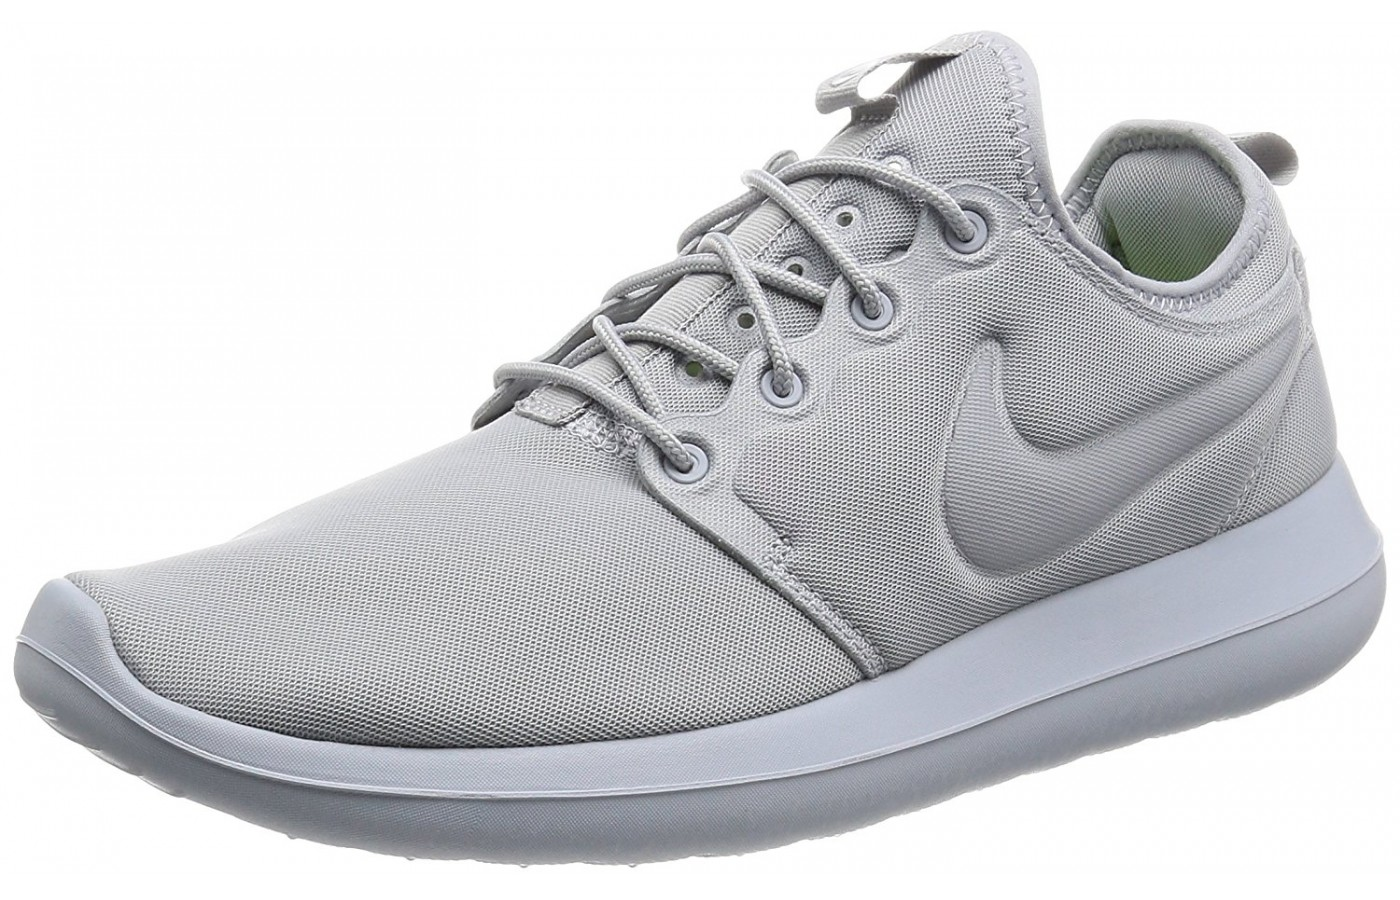 c0e2d830fe0fe A three quarter view of the Nike Roshe 2 running shoe ...